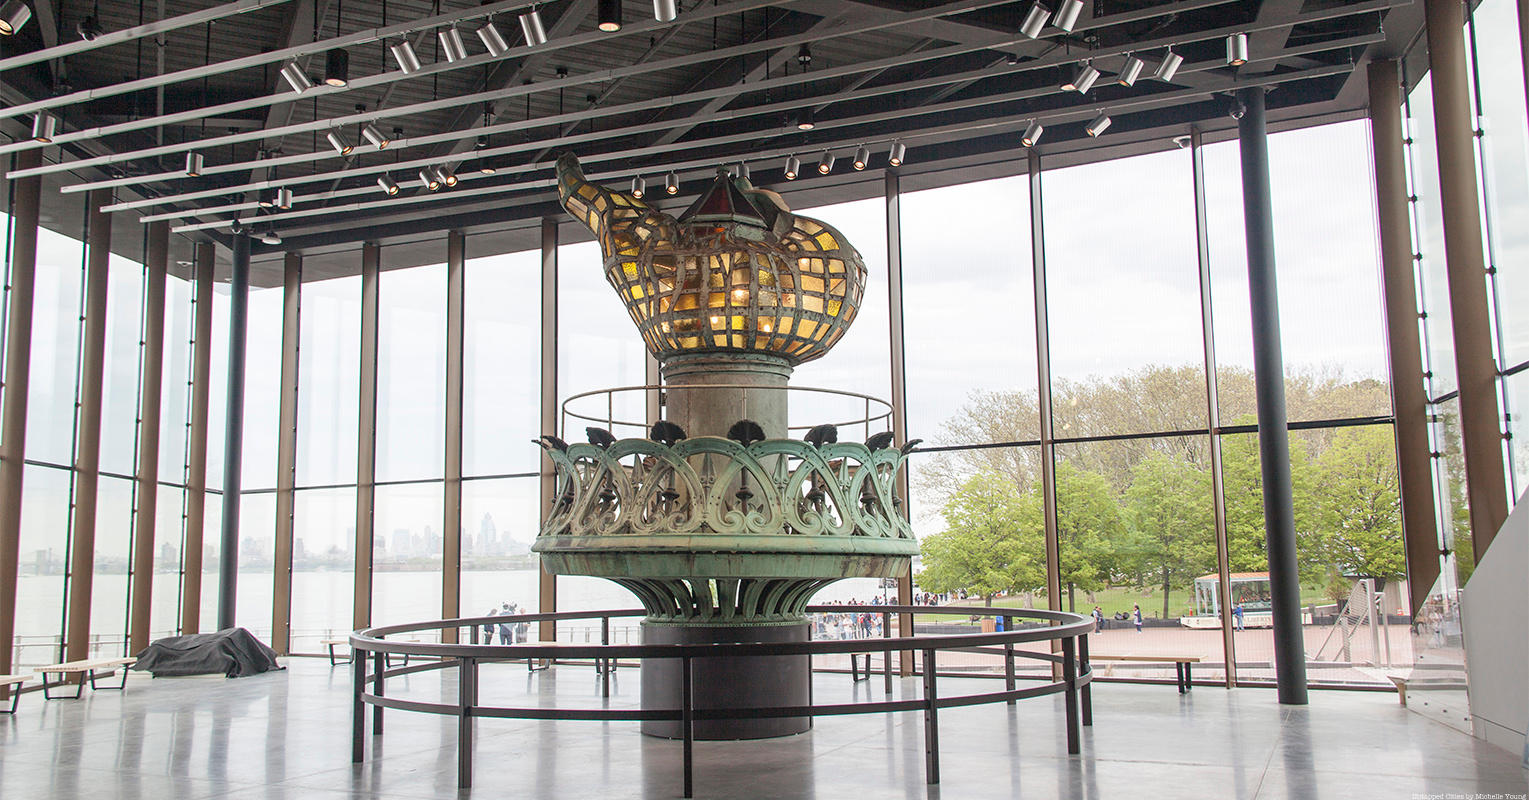 Take a Look Inside the New Statue of Liberty Museum on Liberty Island